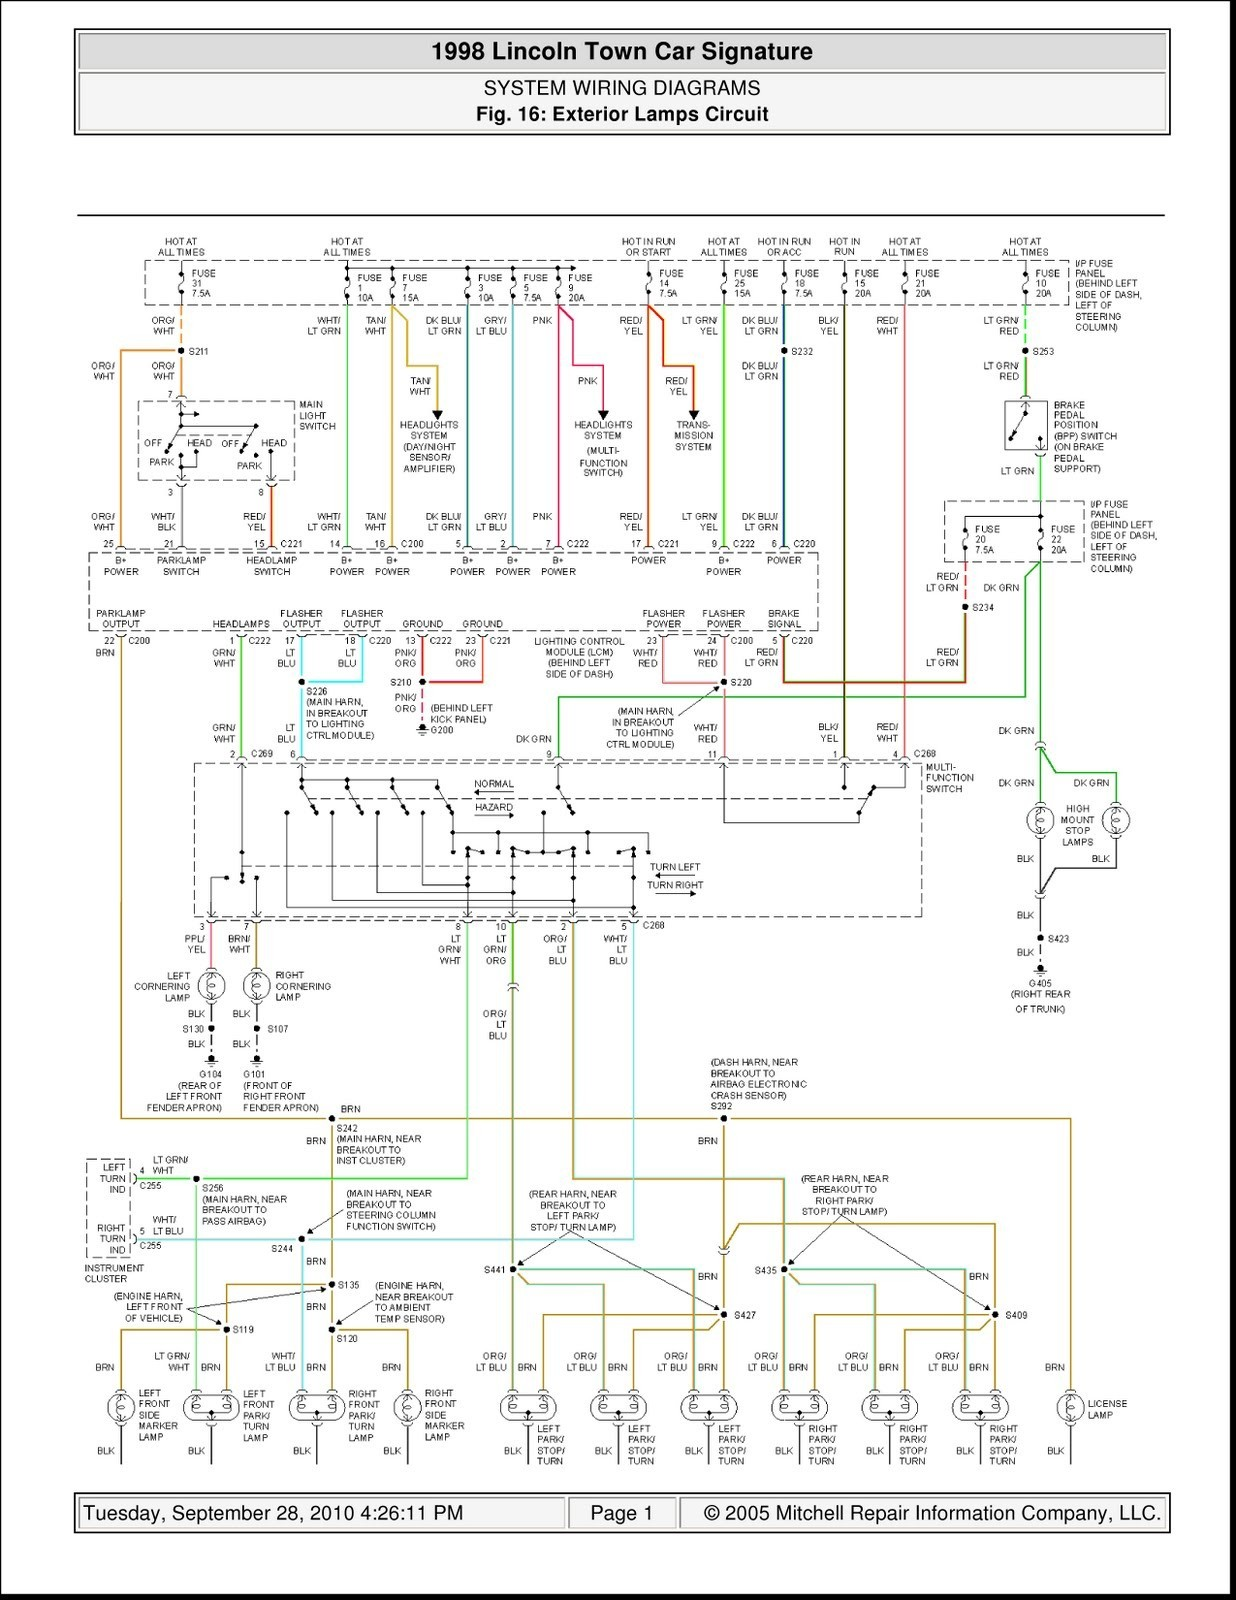 2000 Mercury Grand Marquis Wiring Diagram My 2009 Chevrolet Impala 2002 Lincoln Town Car Wire Center U2022 Rh Bleongroup Co Chevy Ltz 2001